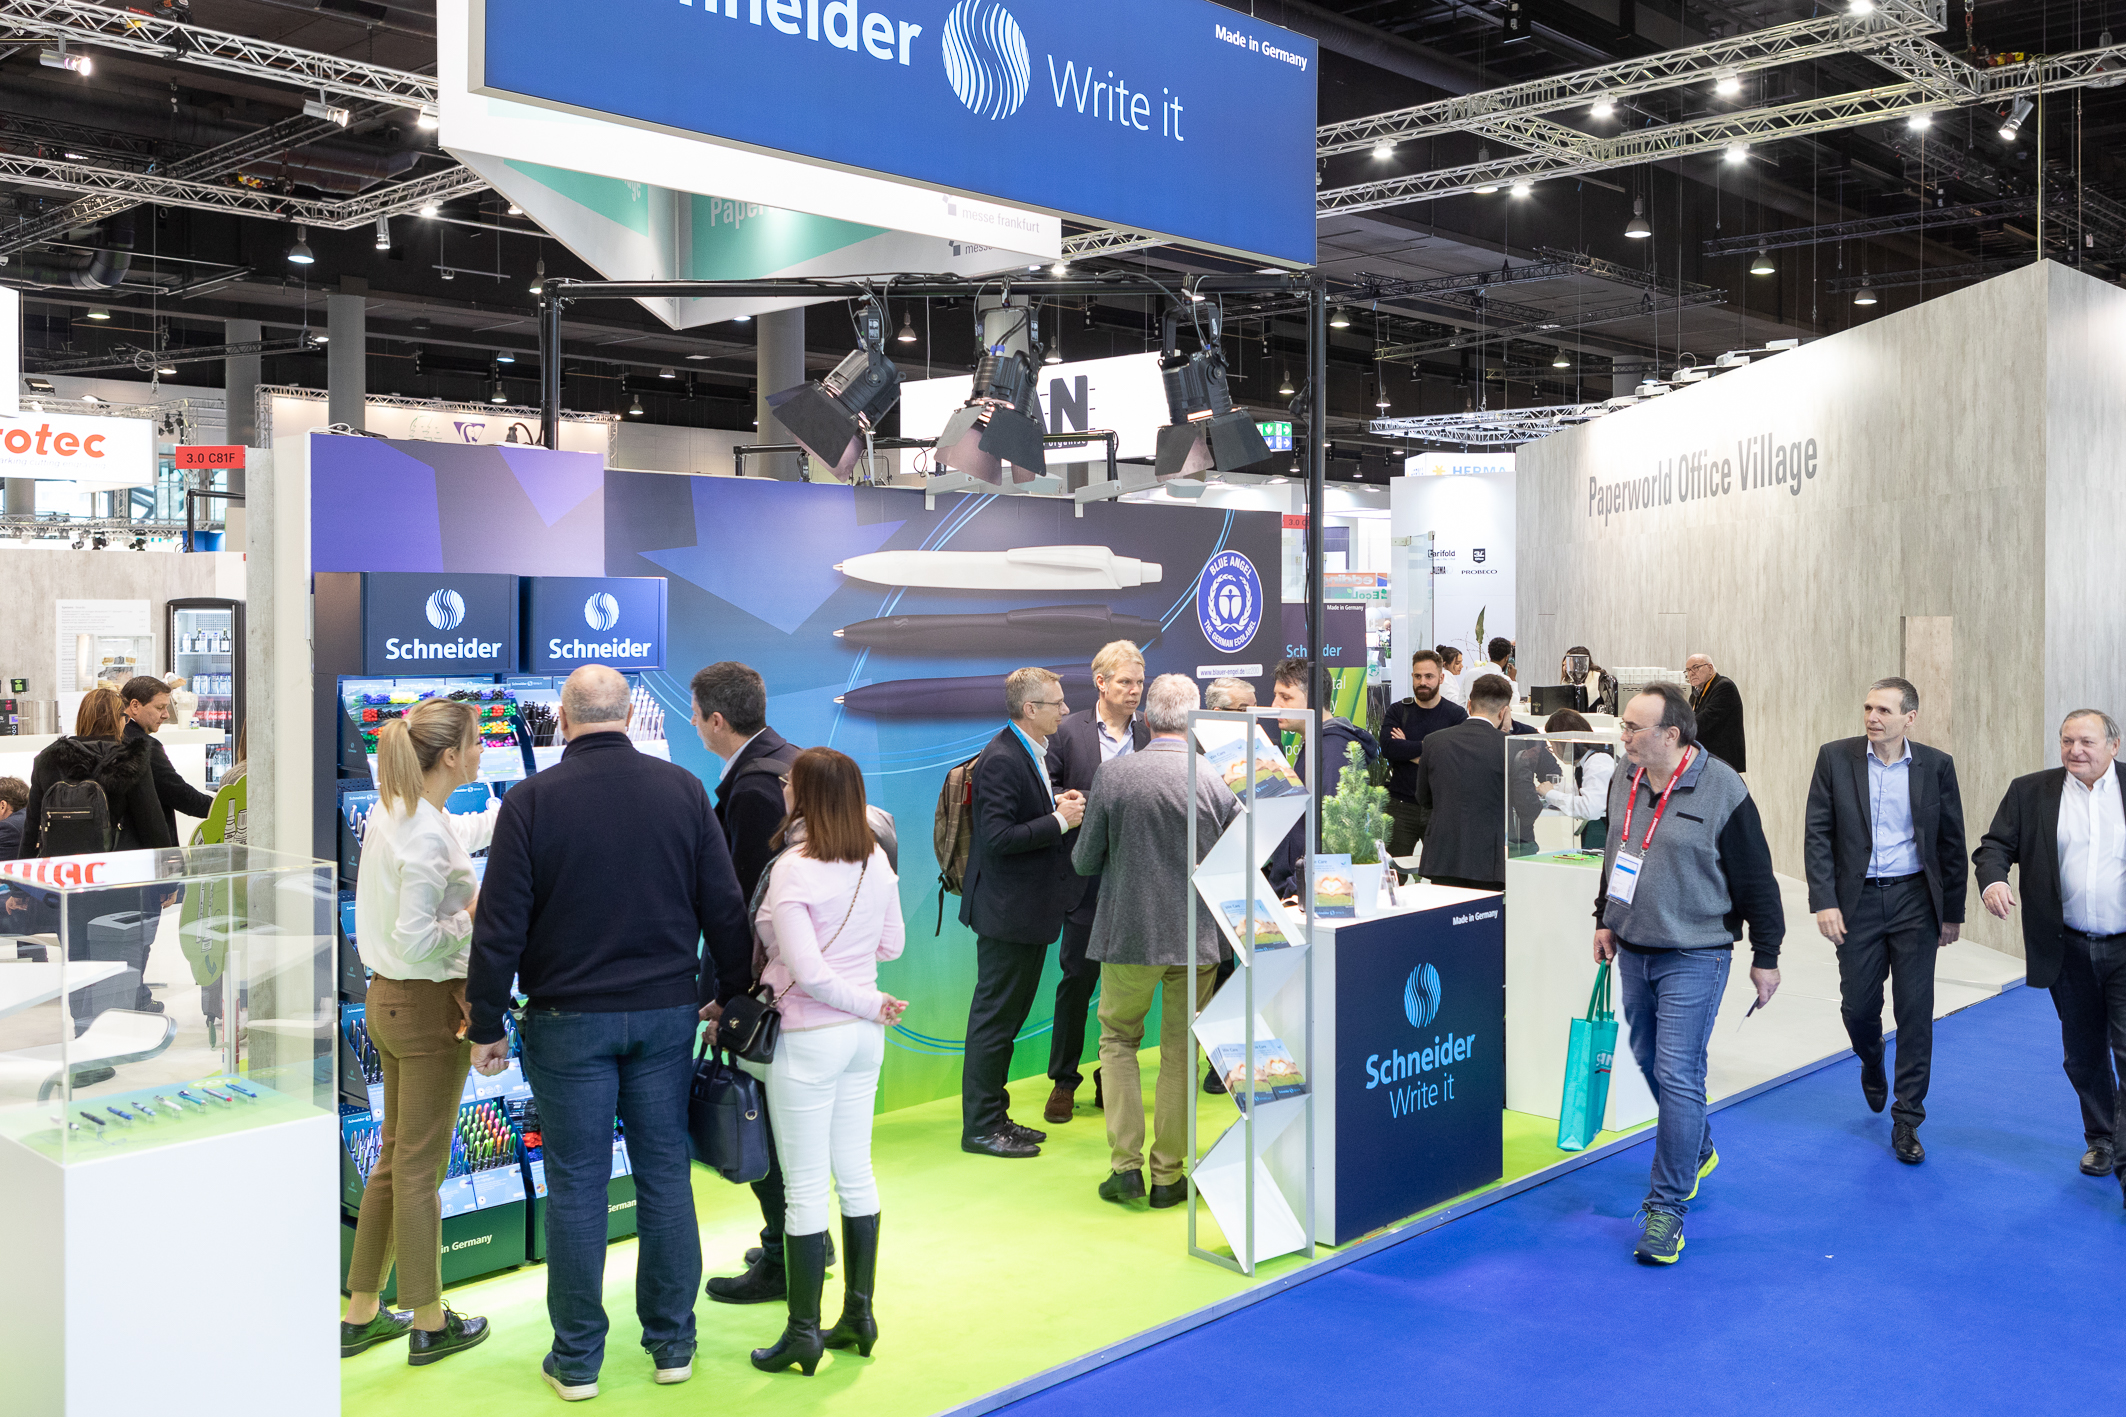 Paperworld Office Village: Booth of Schneider at Paperworld